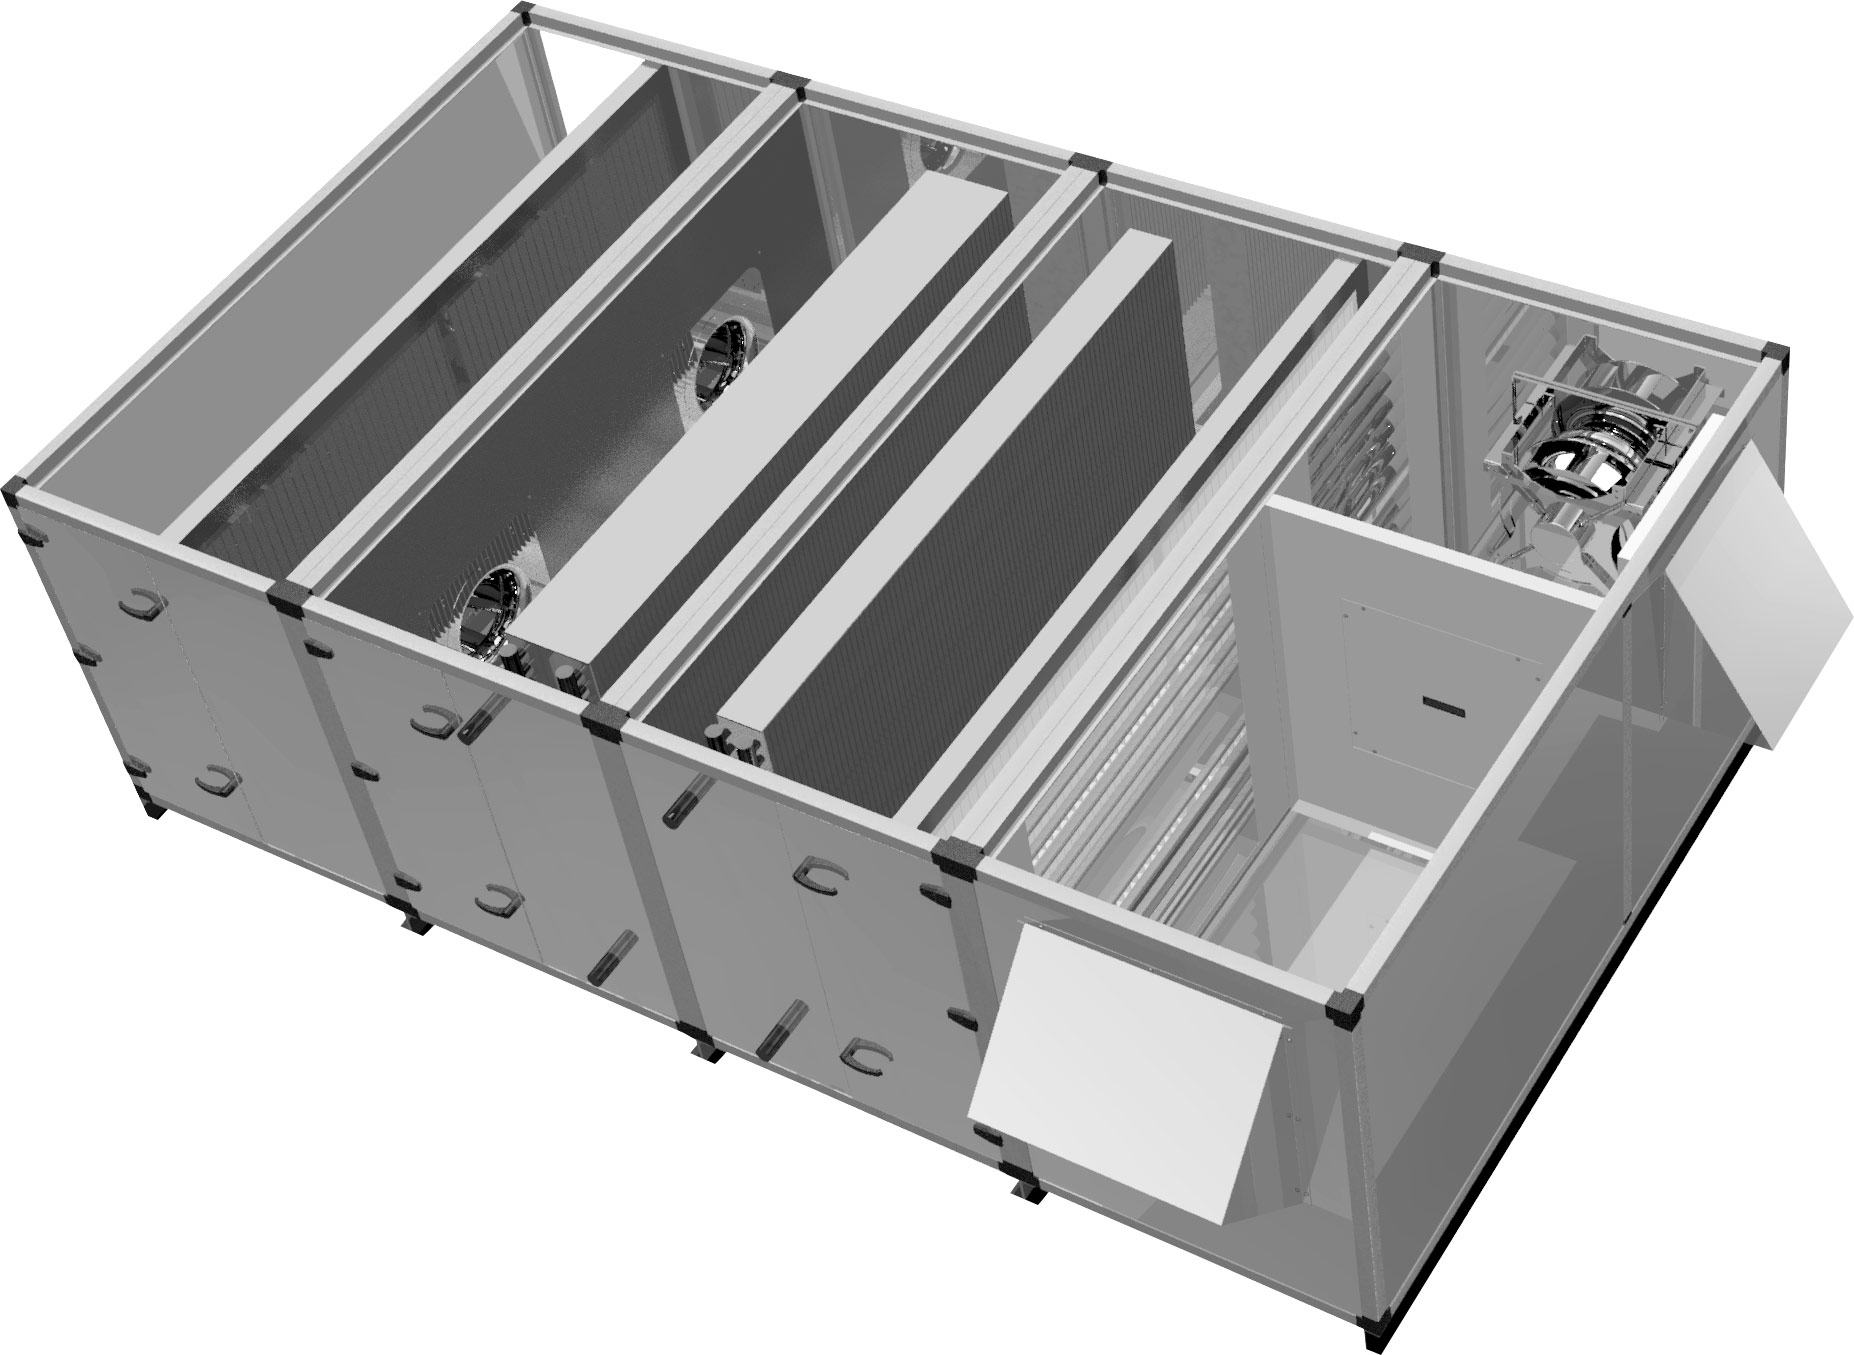 Custom Air Handling Units - Air handling unit 3